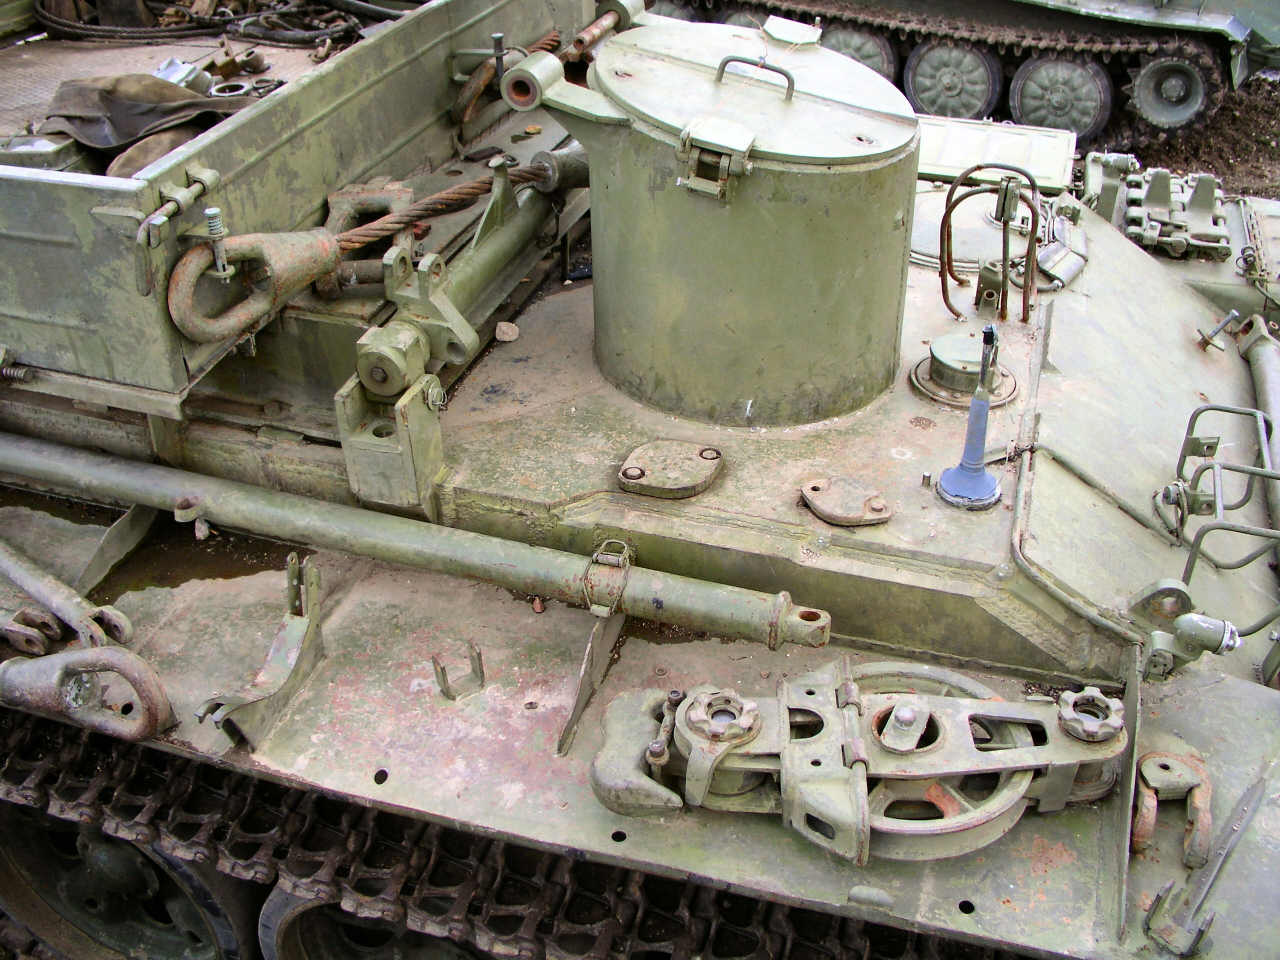 wzt 1 task 2 Unlike the t-55 and the wzt-1, the wzt-2 is still the basic arv of the polish army used for field repairs it can carry out repairs not only on soviet tanks like the t-54/t-55 and t-72 but also on polish pt-91 and german leopard 2a4 tanks.